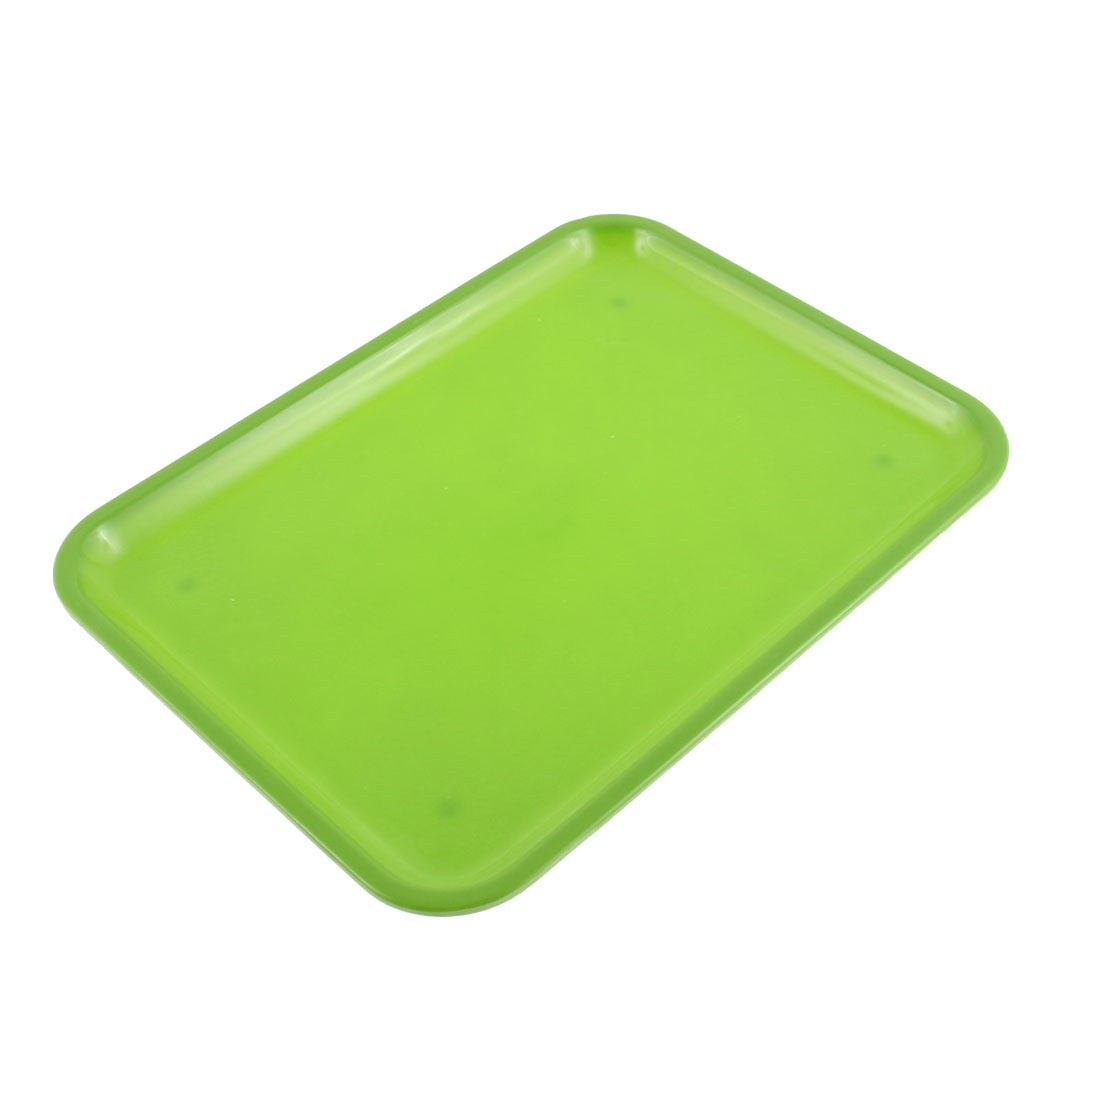 "Restaurant Plastic Rectangle Shape Food Drinks Serving Tray Green 10"" Length"